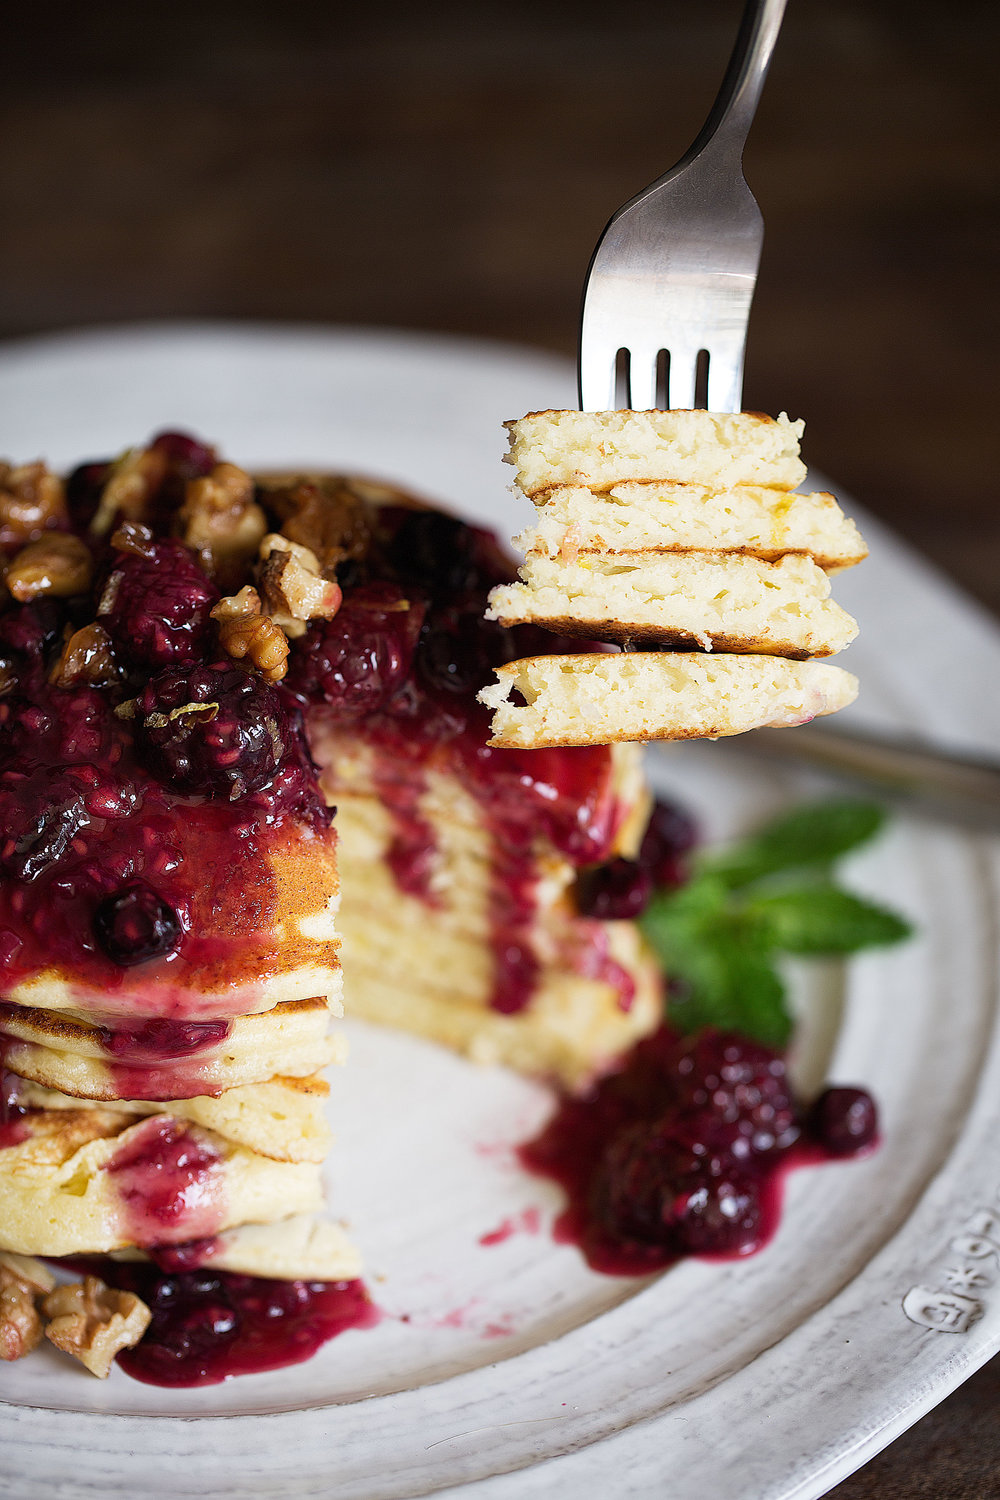 lemon ricotta pancakes with mixed berry compote and candied walnuts bite with fork